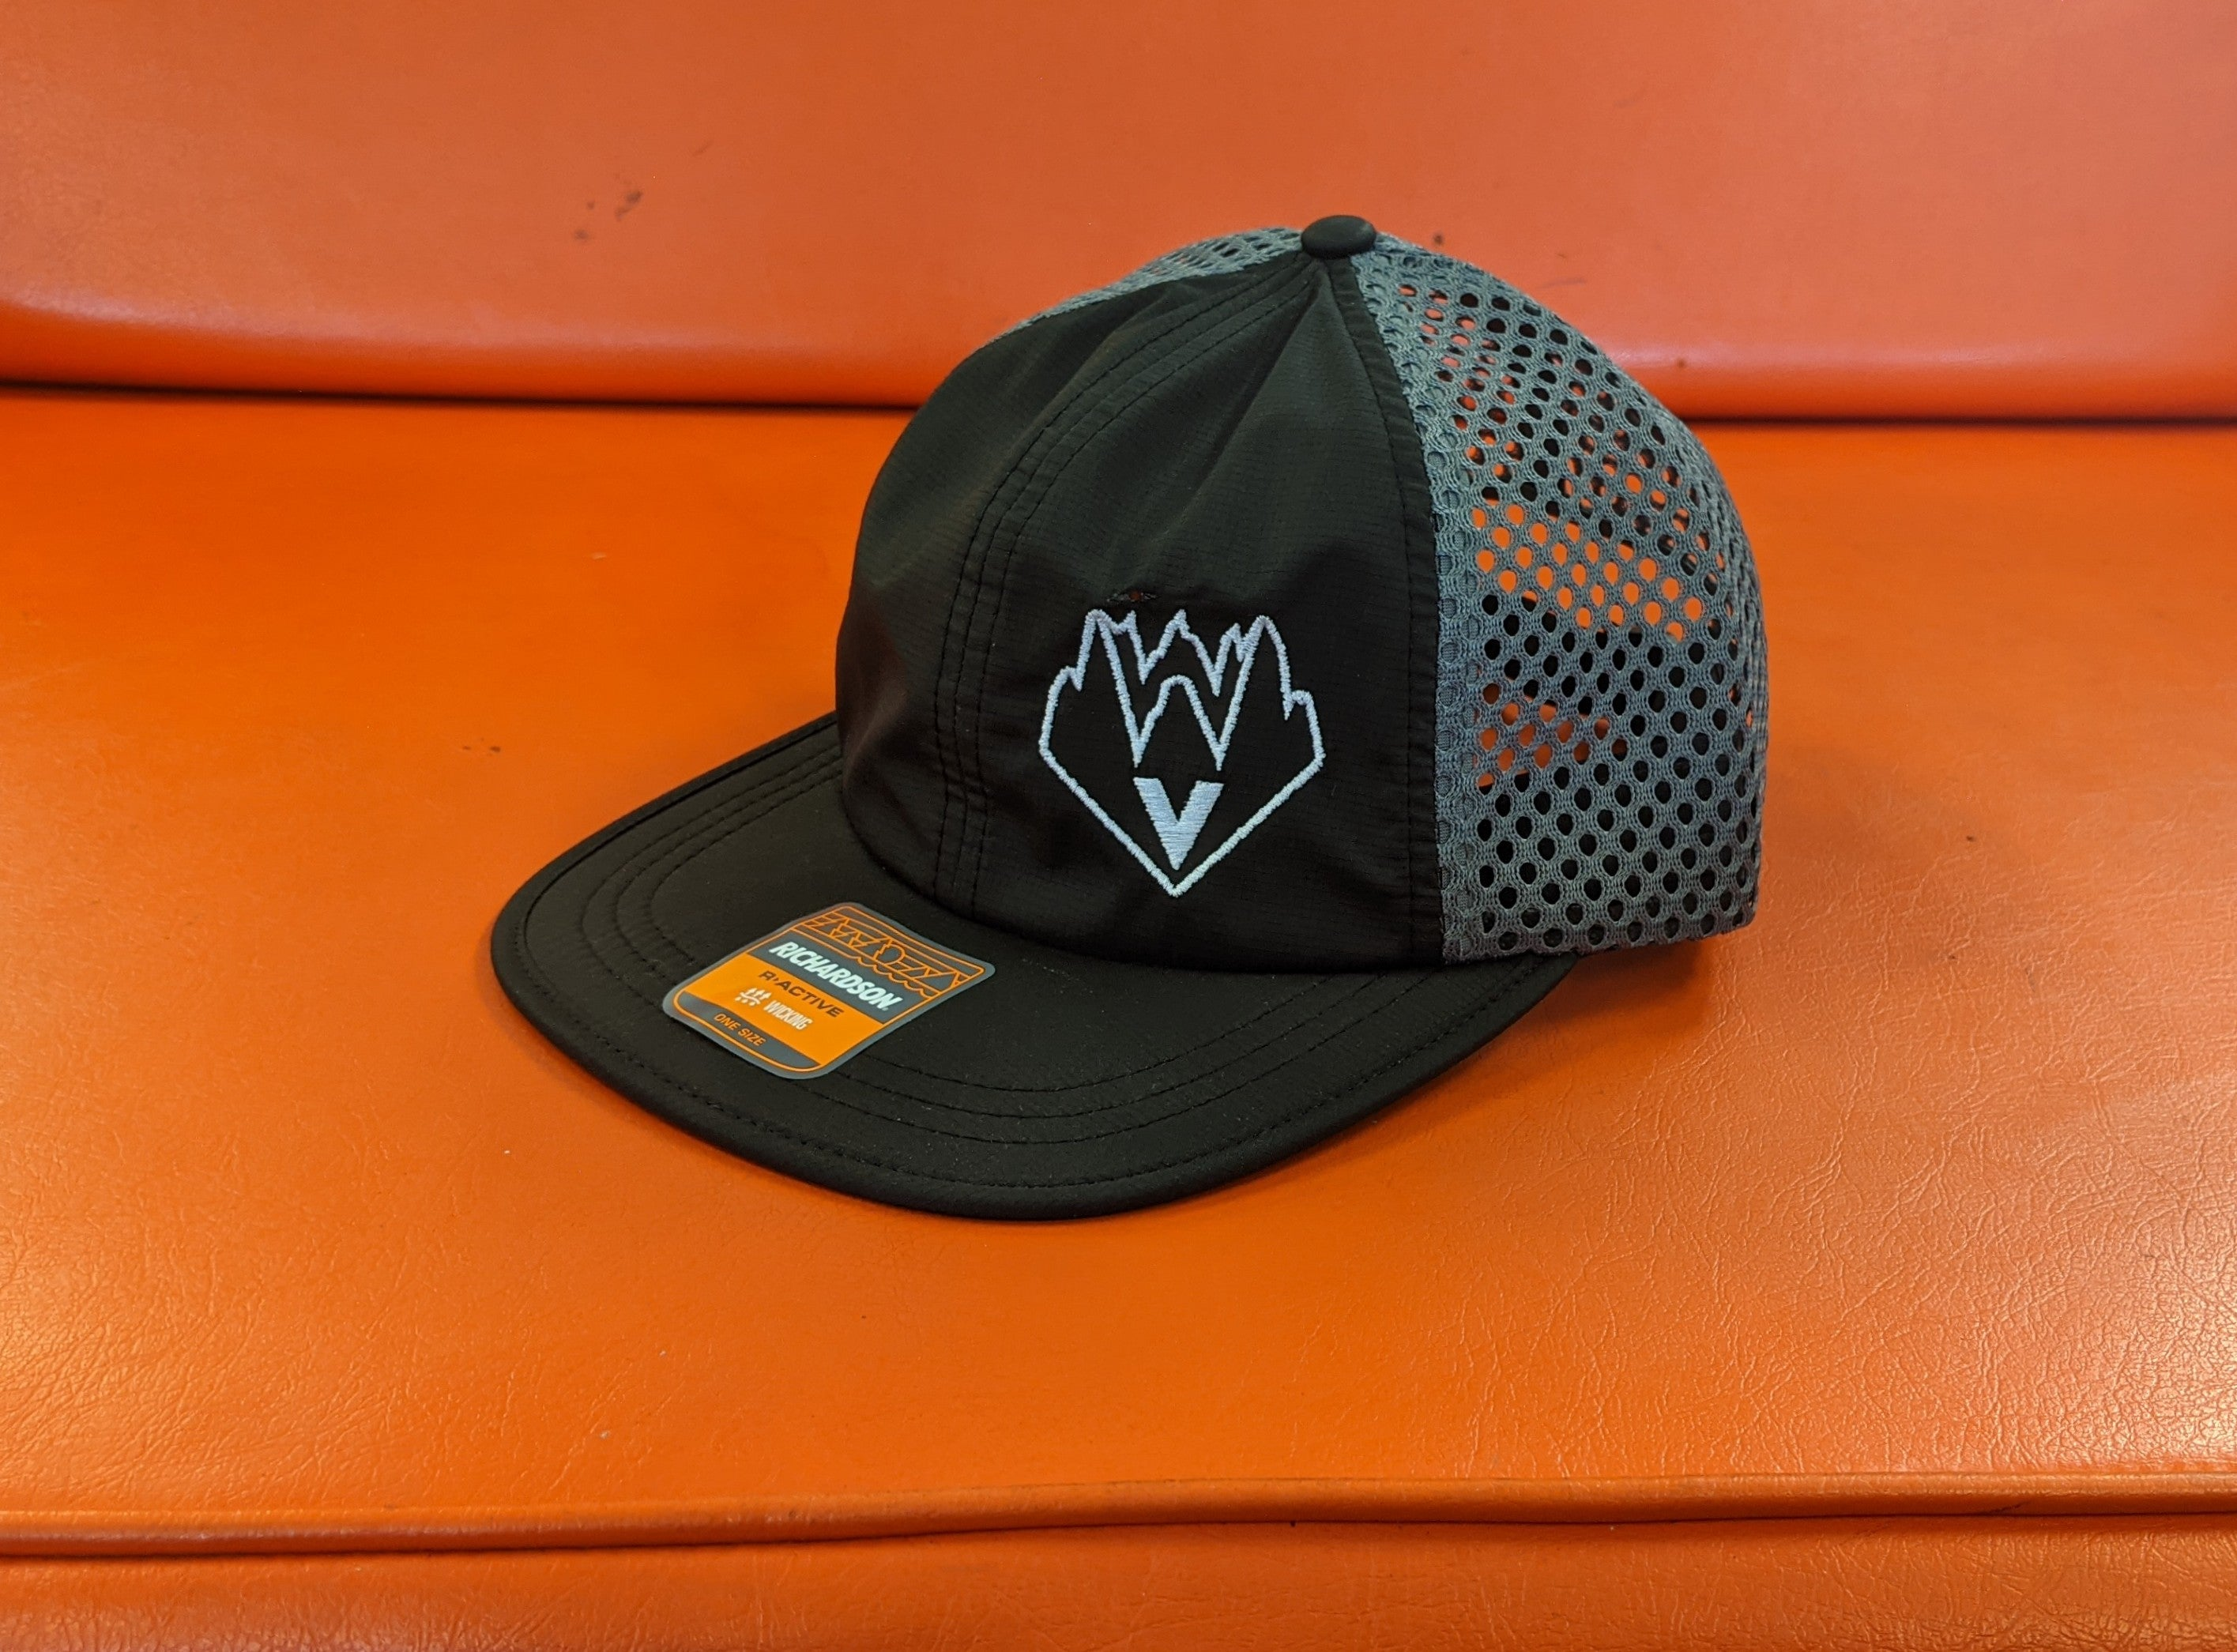 Willamette Valley Alchemy Trucker Hat with Embroidery